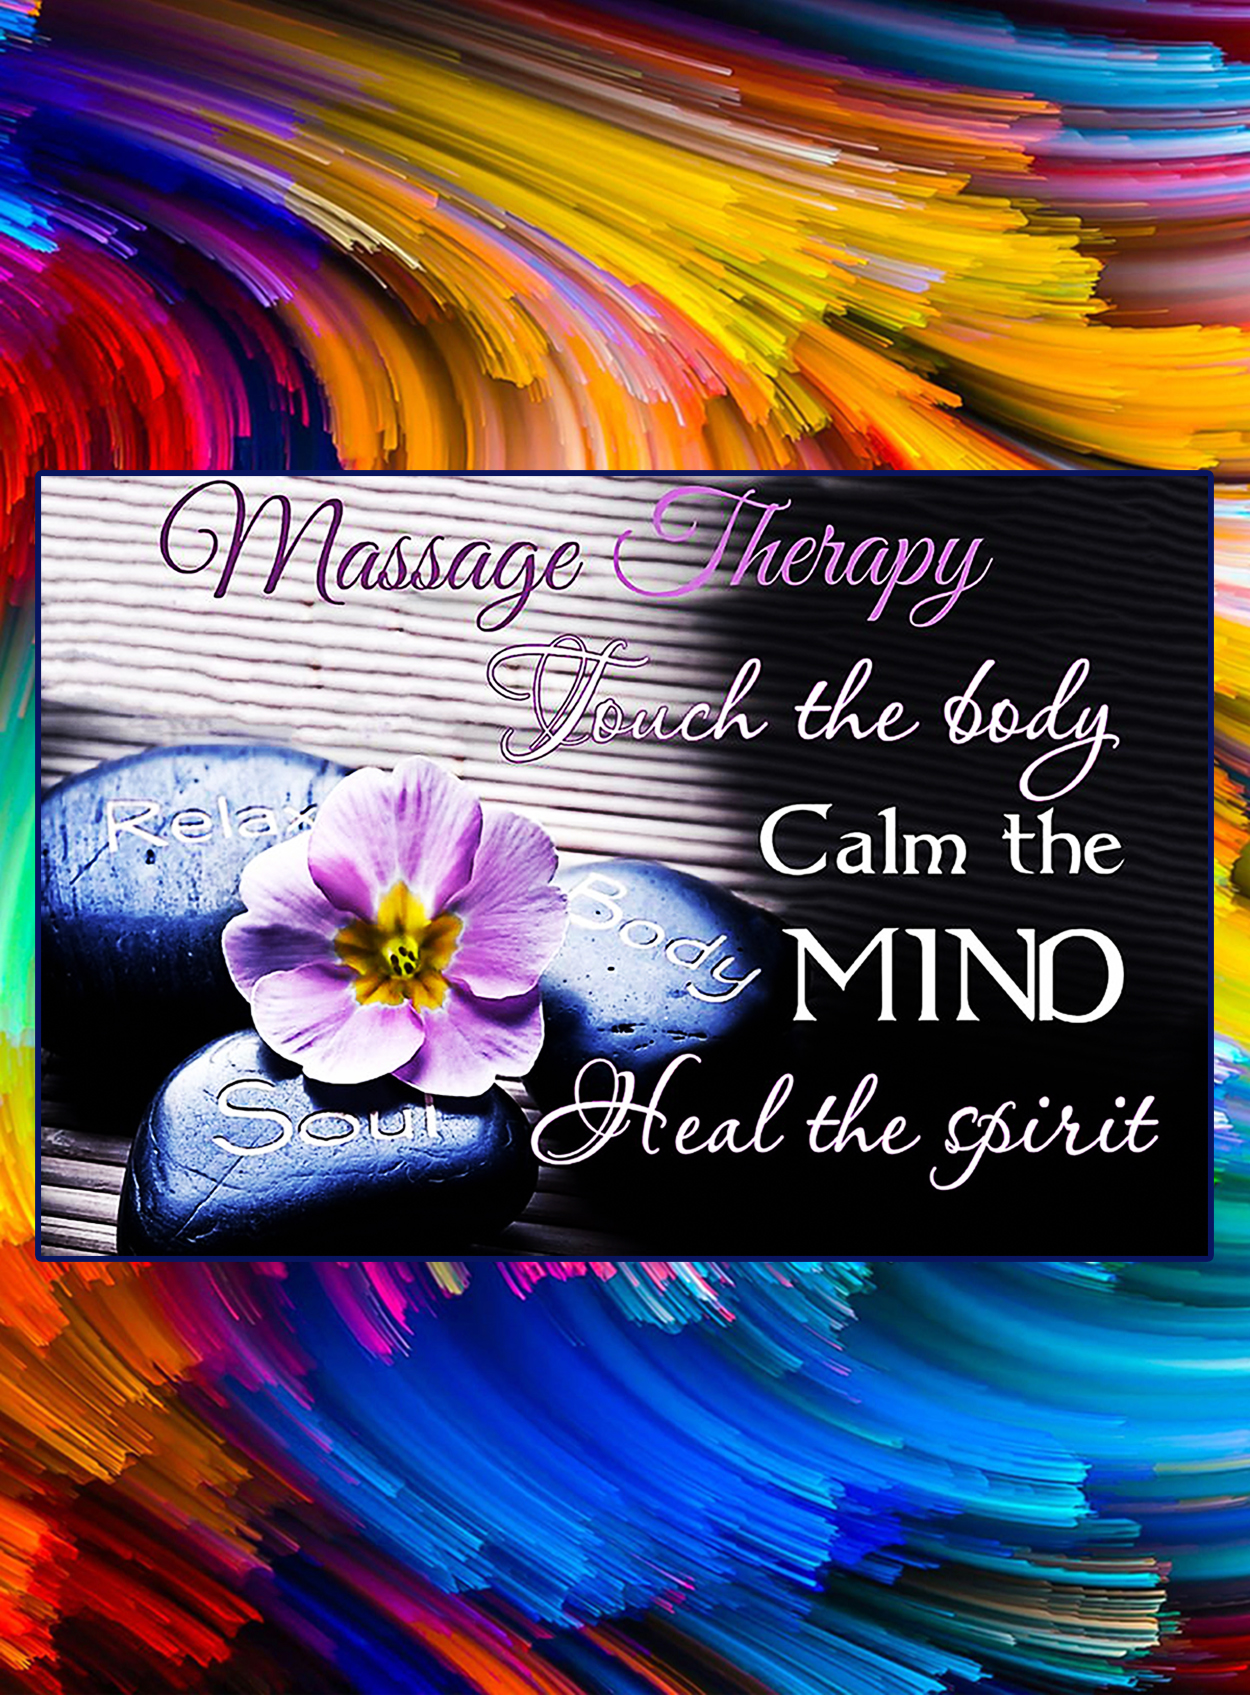 Massage therapy touch the body calm the mind heal the spirit poster - A3